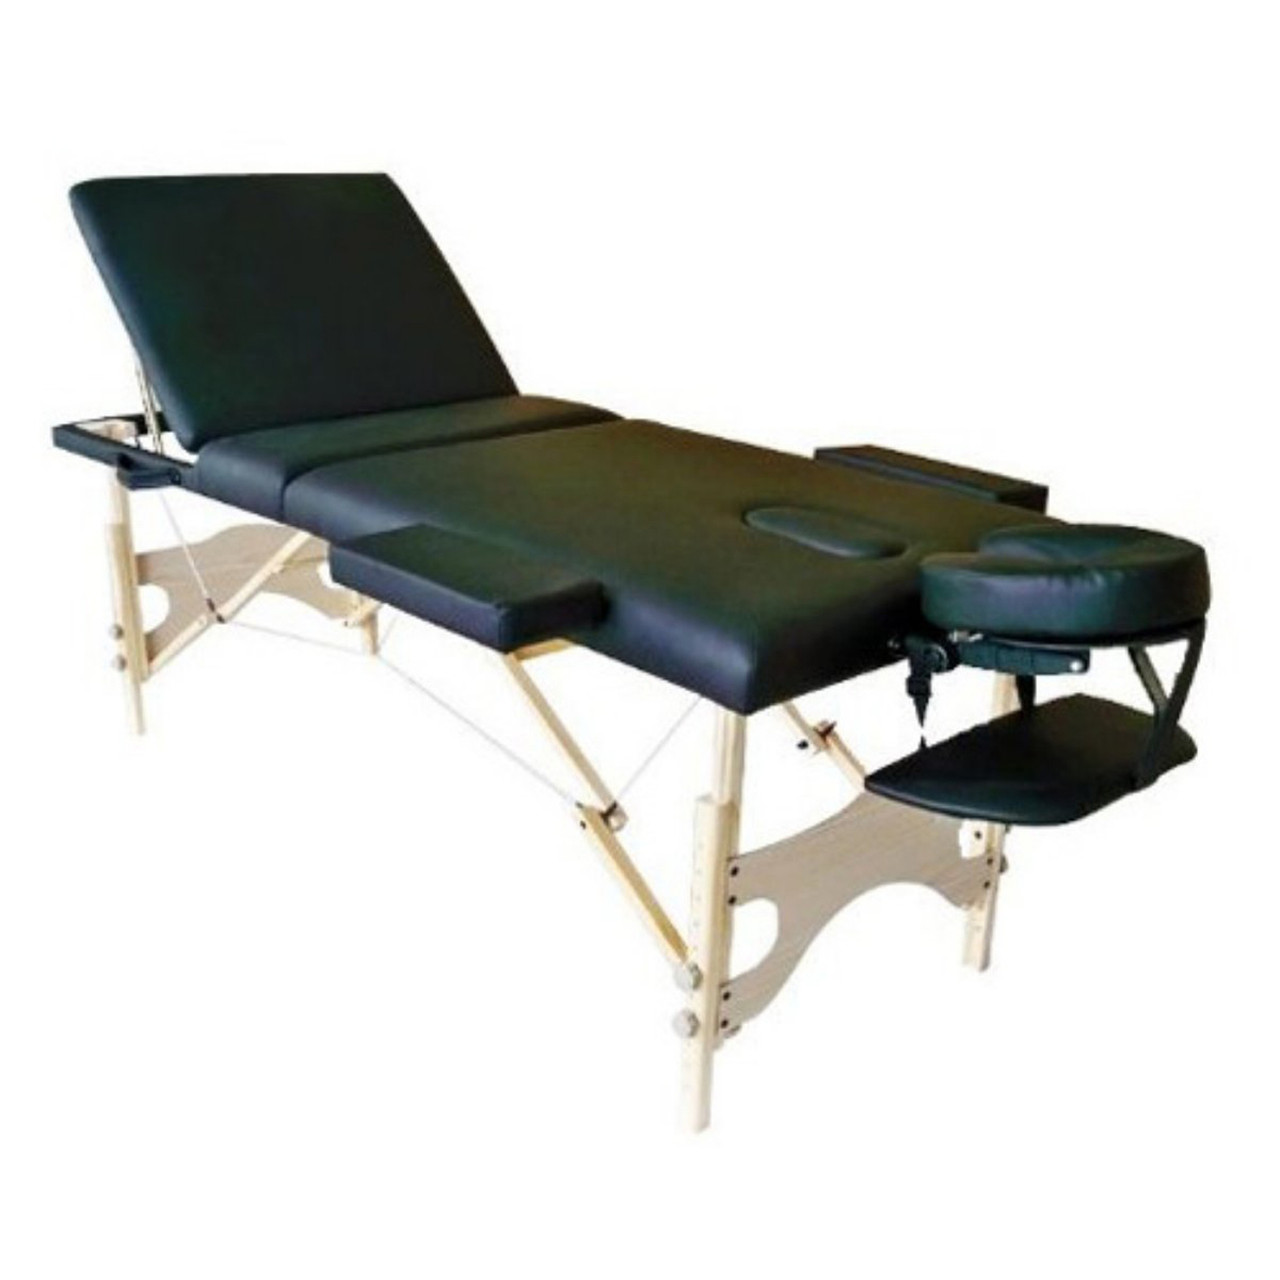 Sivan Health and Fitness HEALTH & FITNESS Three Fold Reiki Portable Massage  Table and Carrying Case, Black